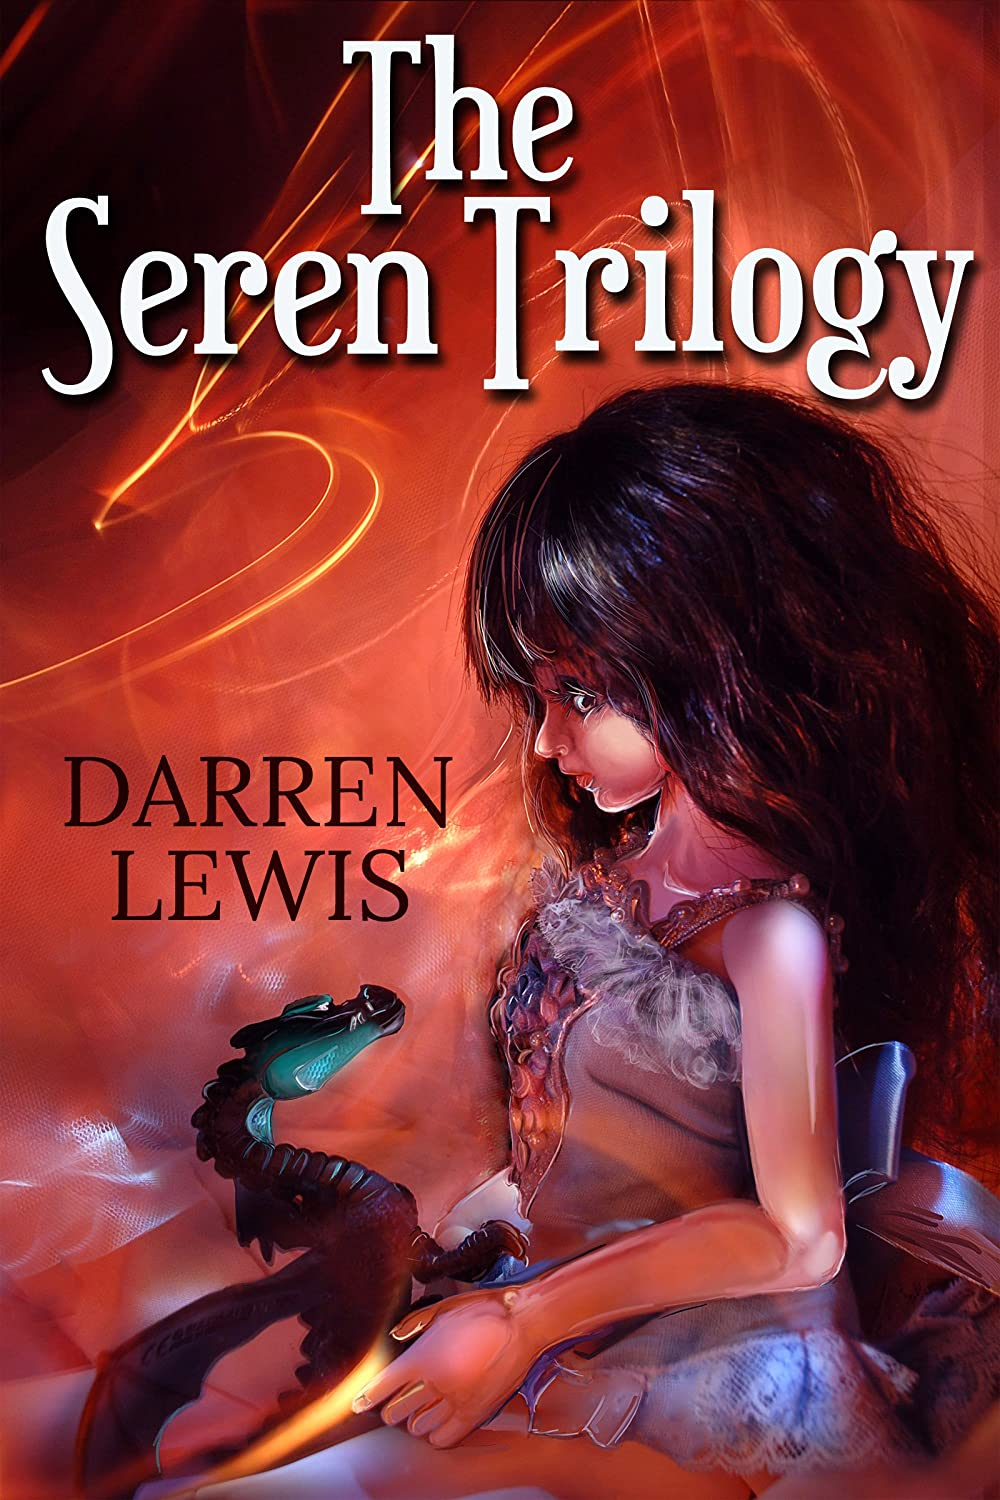 THE-SEREN-TRILOGY-COMPLETED-DESIGN_250